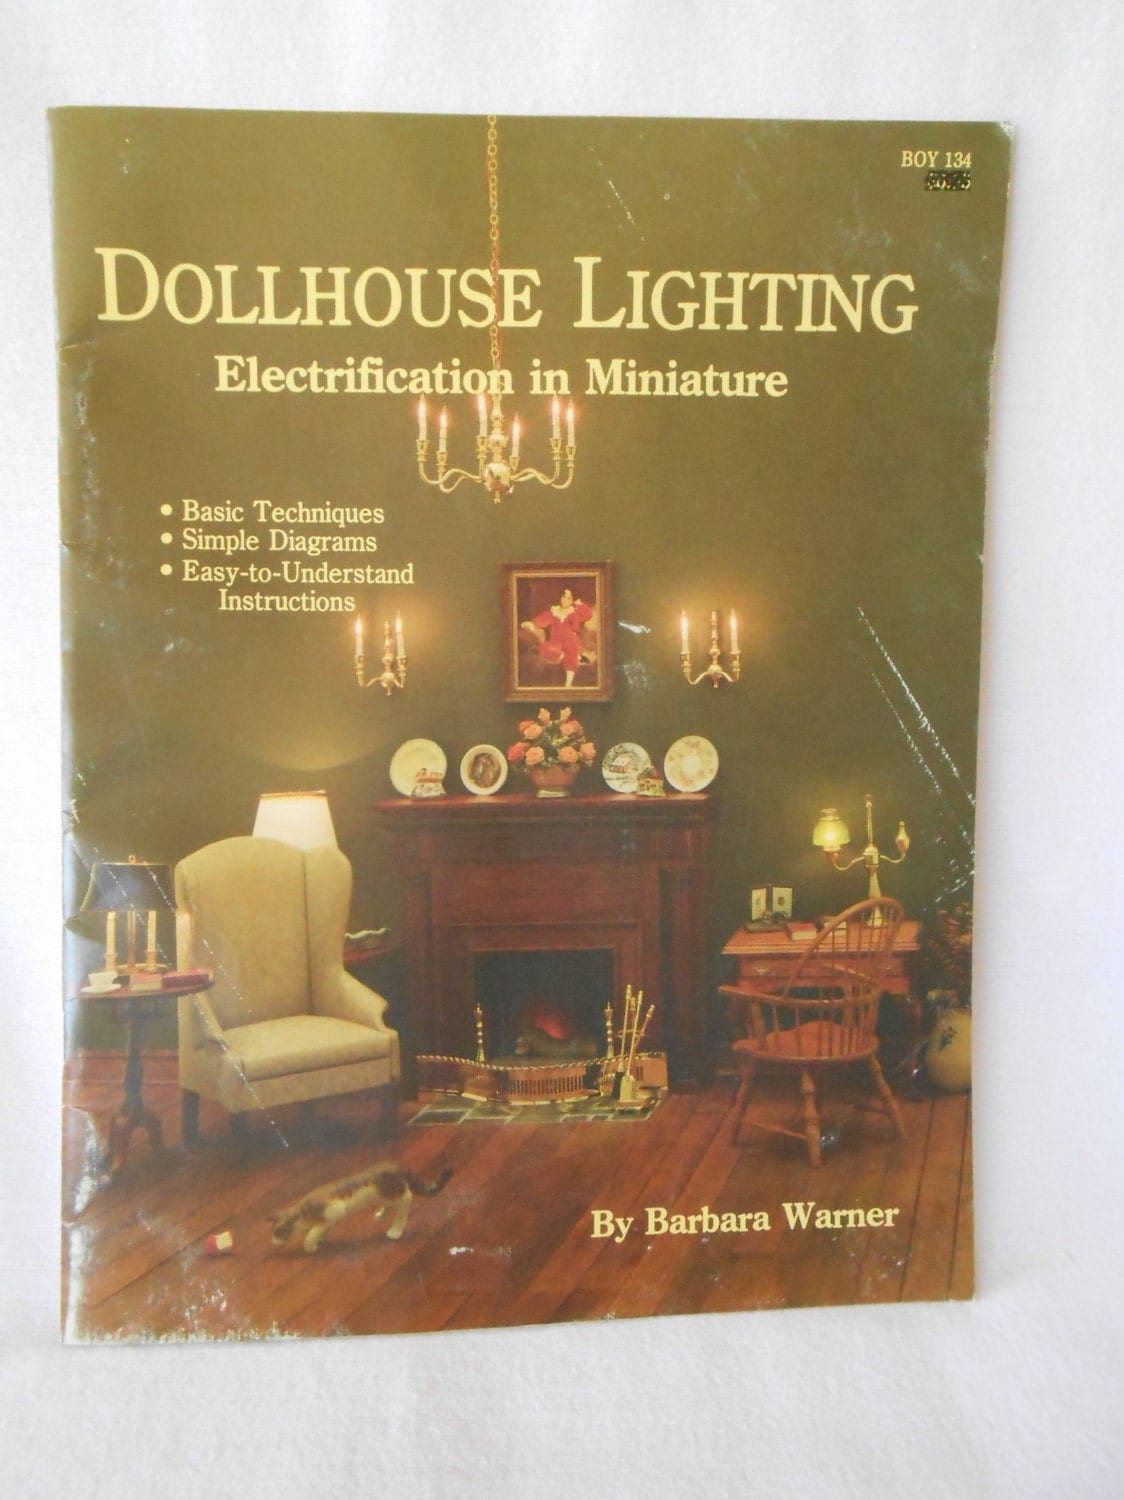 Dollhouse lighting electrification in miniature vintage